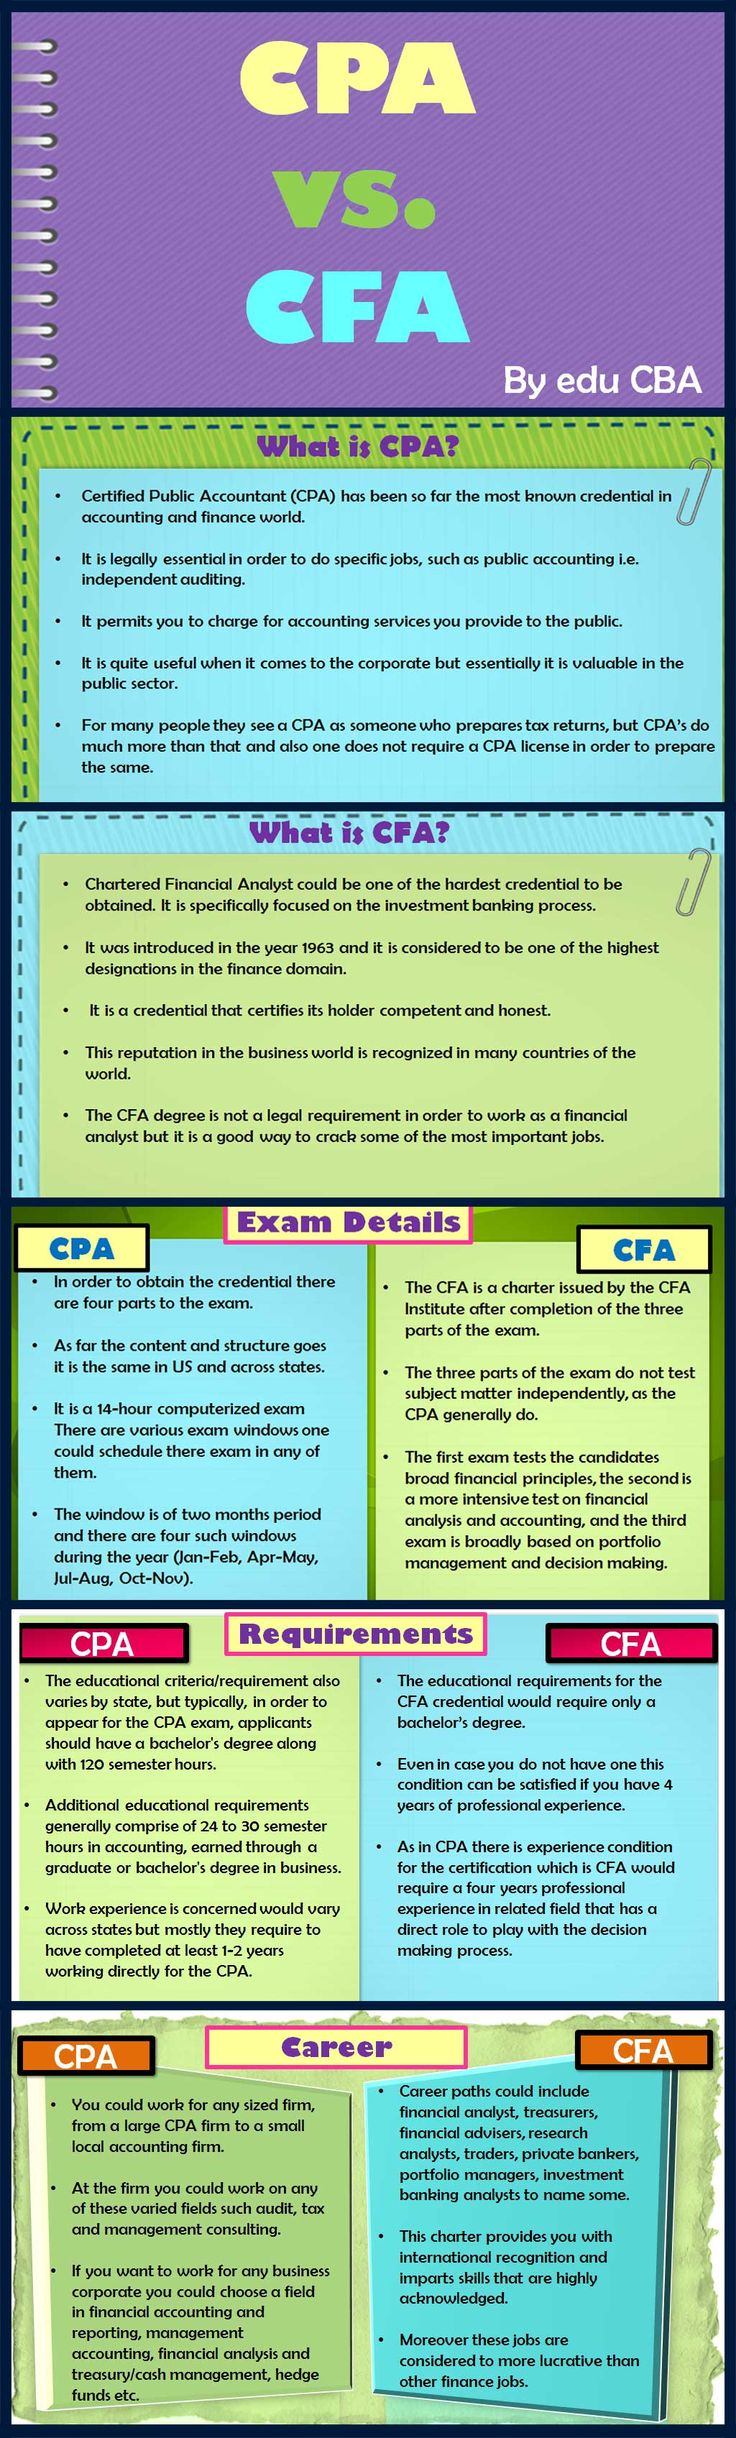 CPA or CFA ... all about the exams and requirements for these two fields.